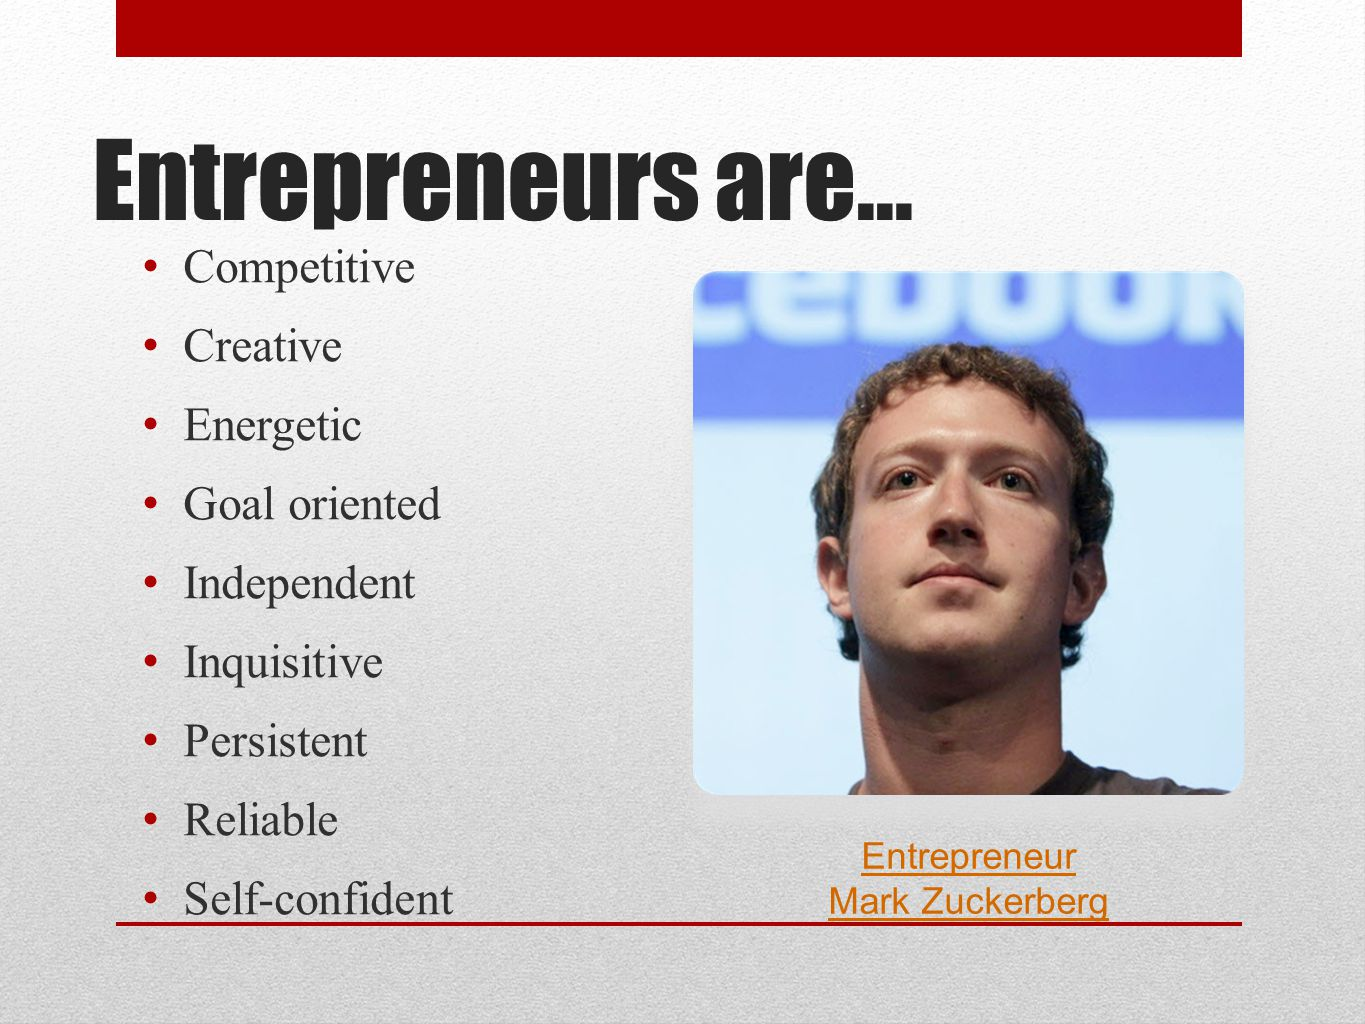 Entrepreneur Mark Zuckerberg